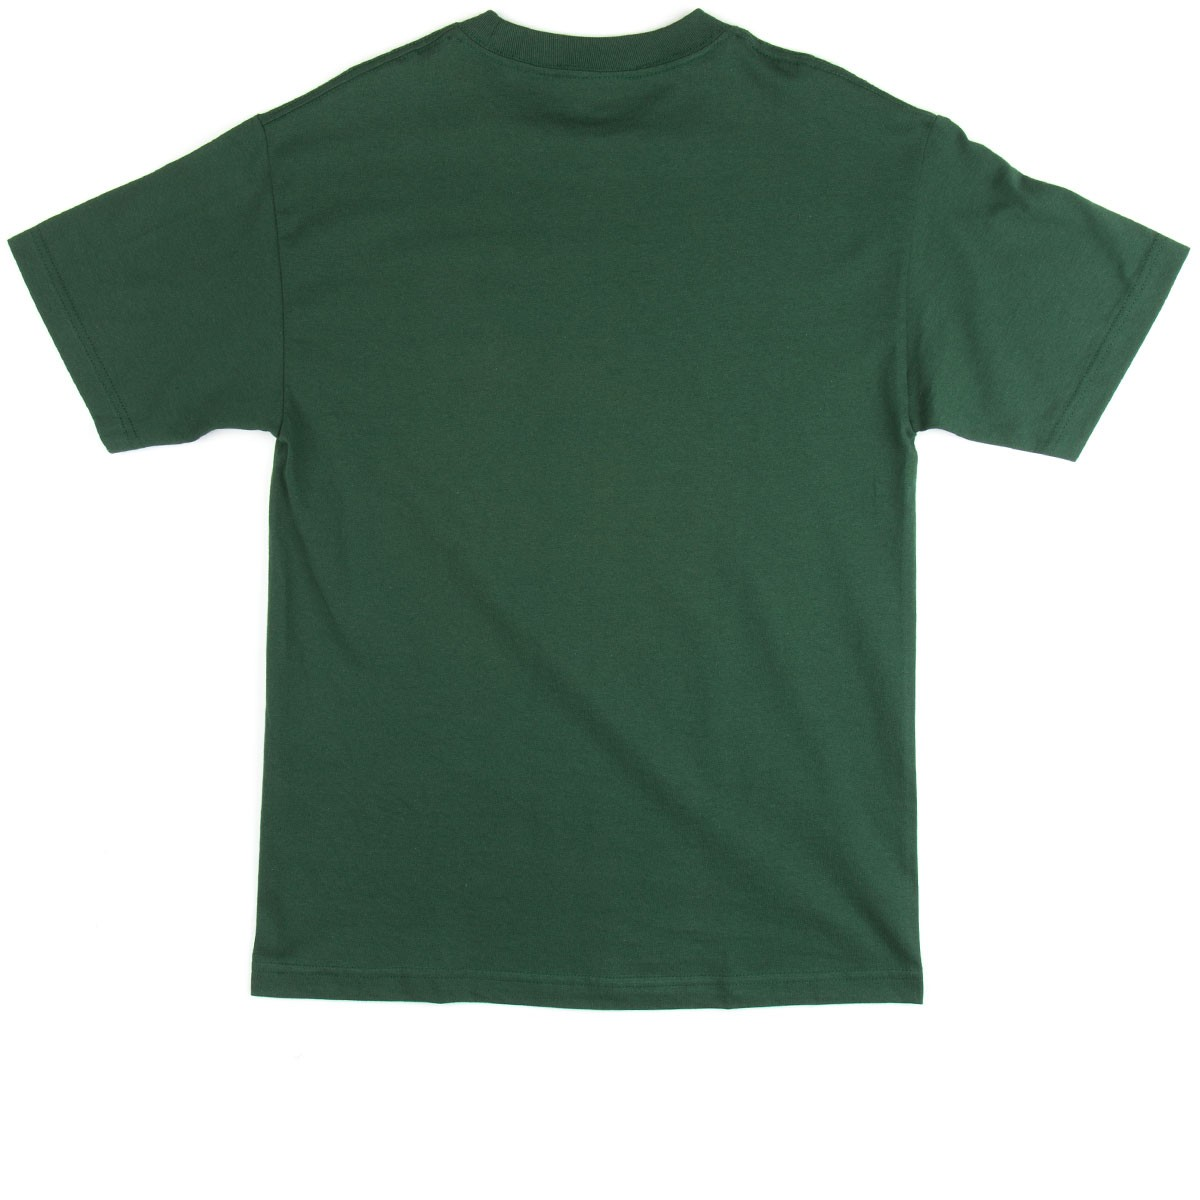 Supply Co. Un-Polo T-Shirt - Hunter Green